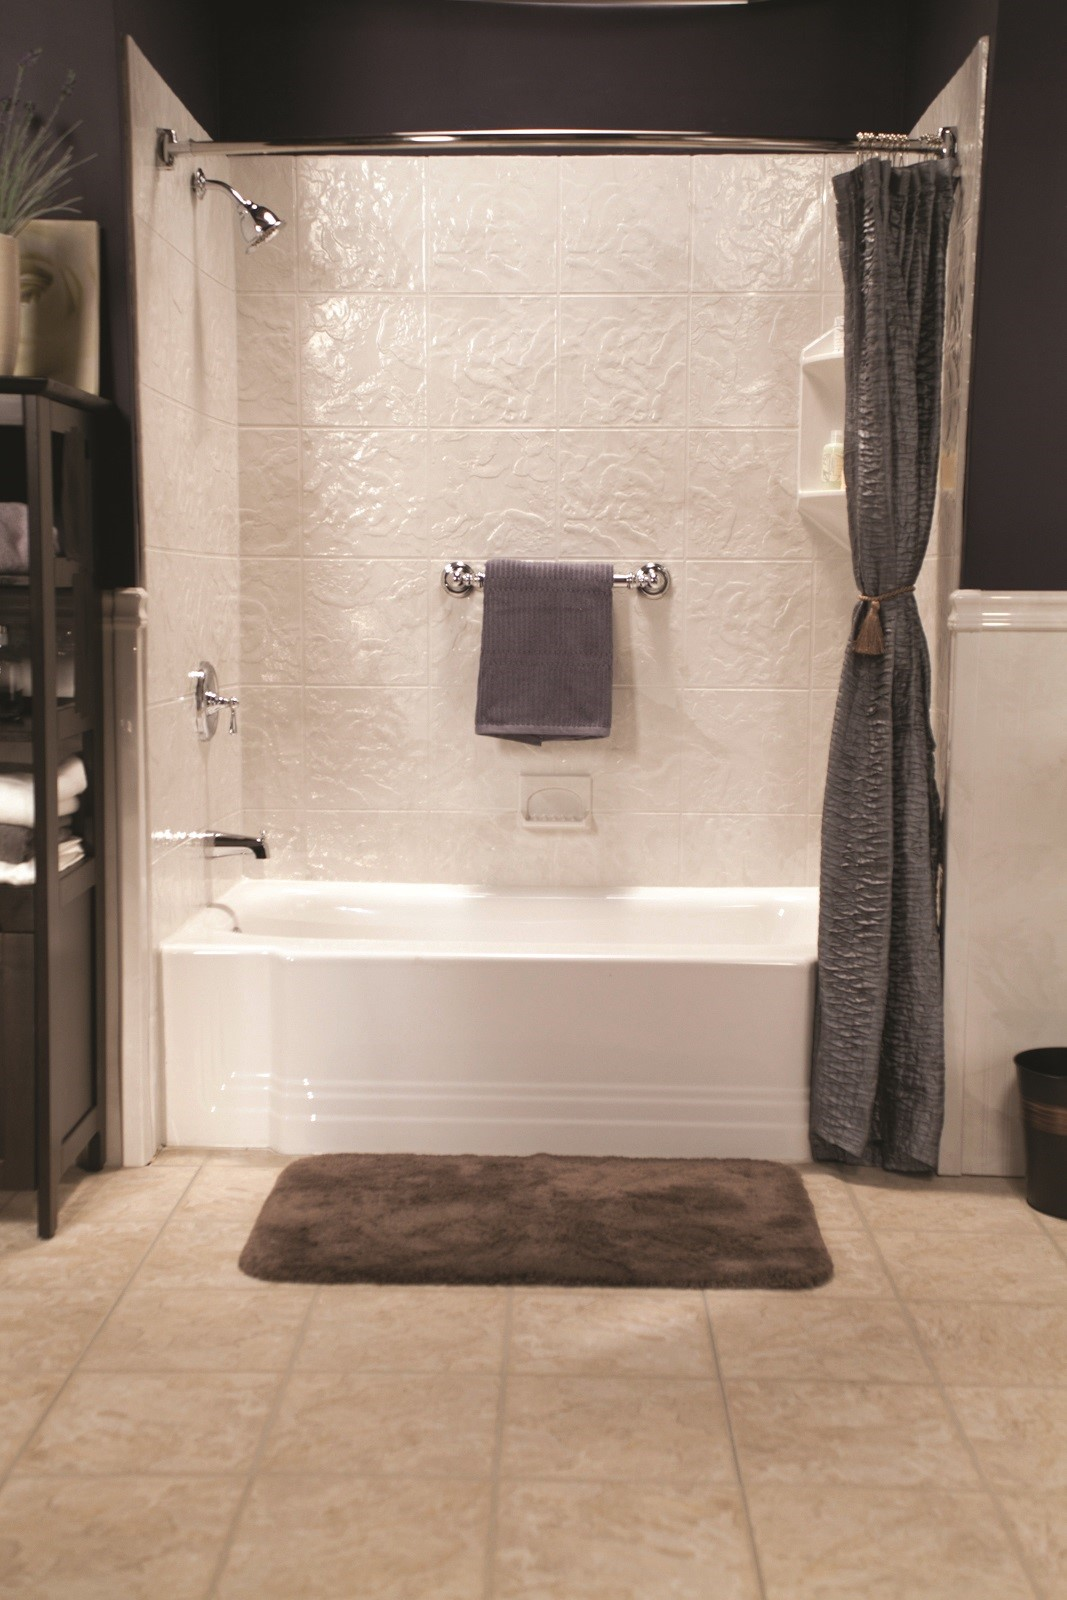 Bathtub RemodelRemodeling Chicagoland Bath Planet Of Chicago - Bathroom remodel springfield il